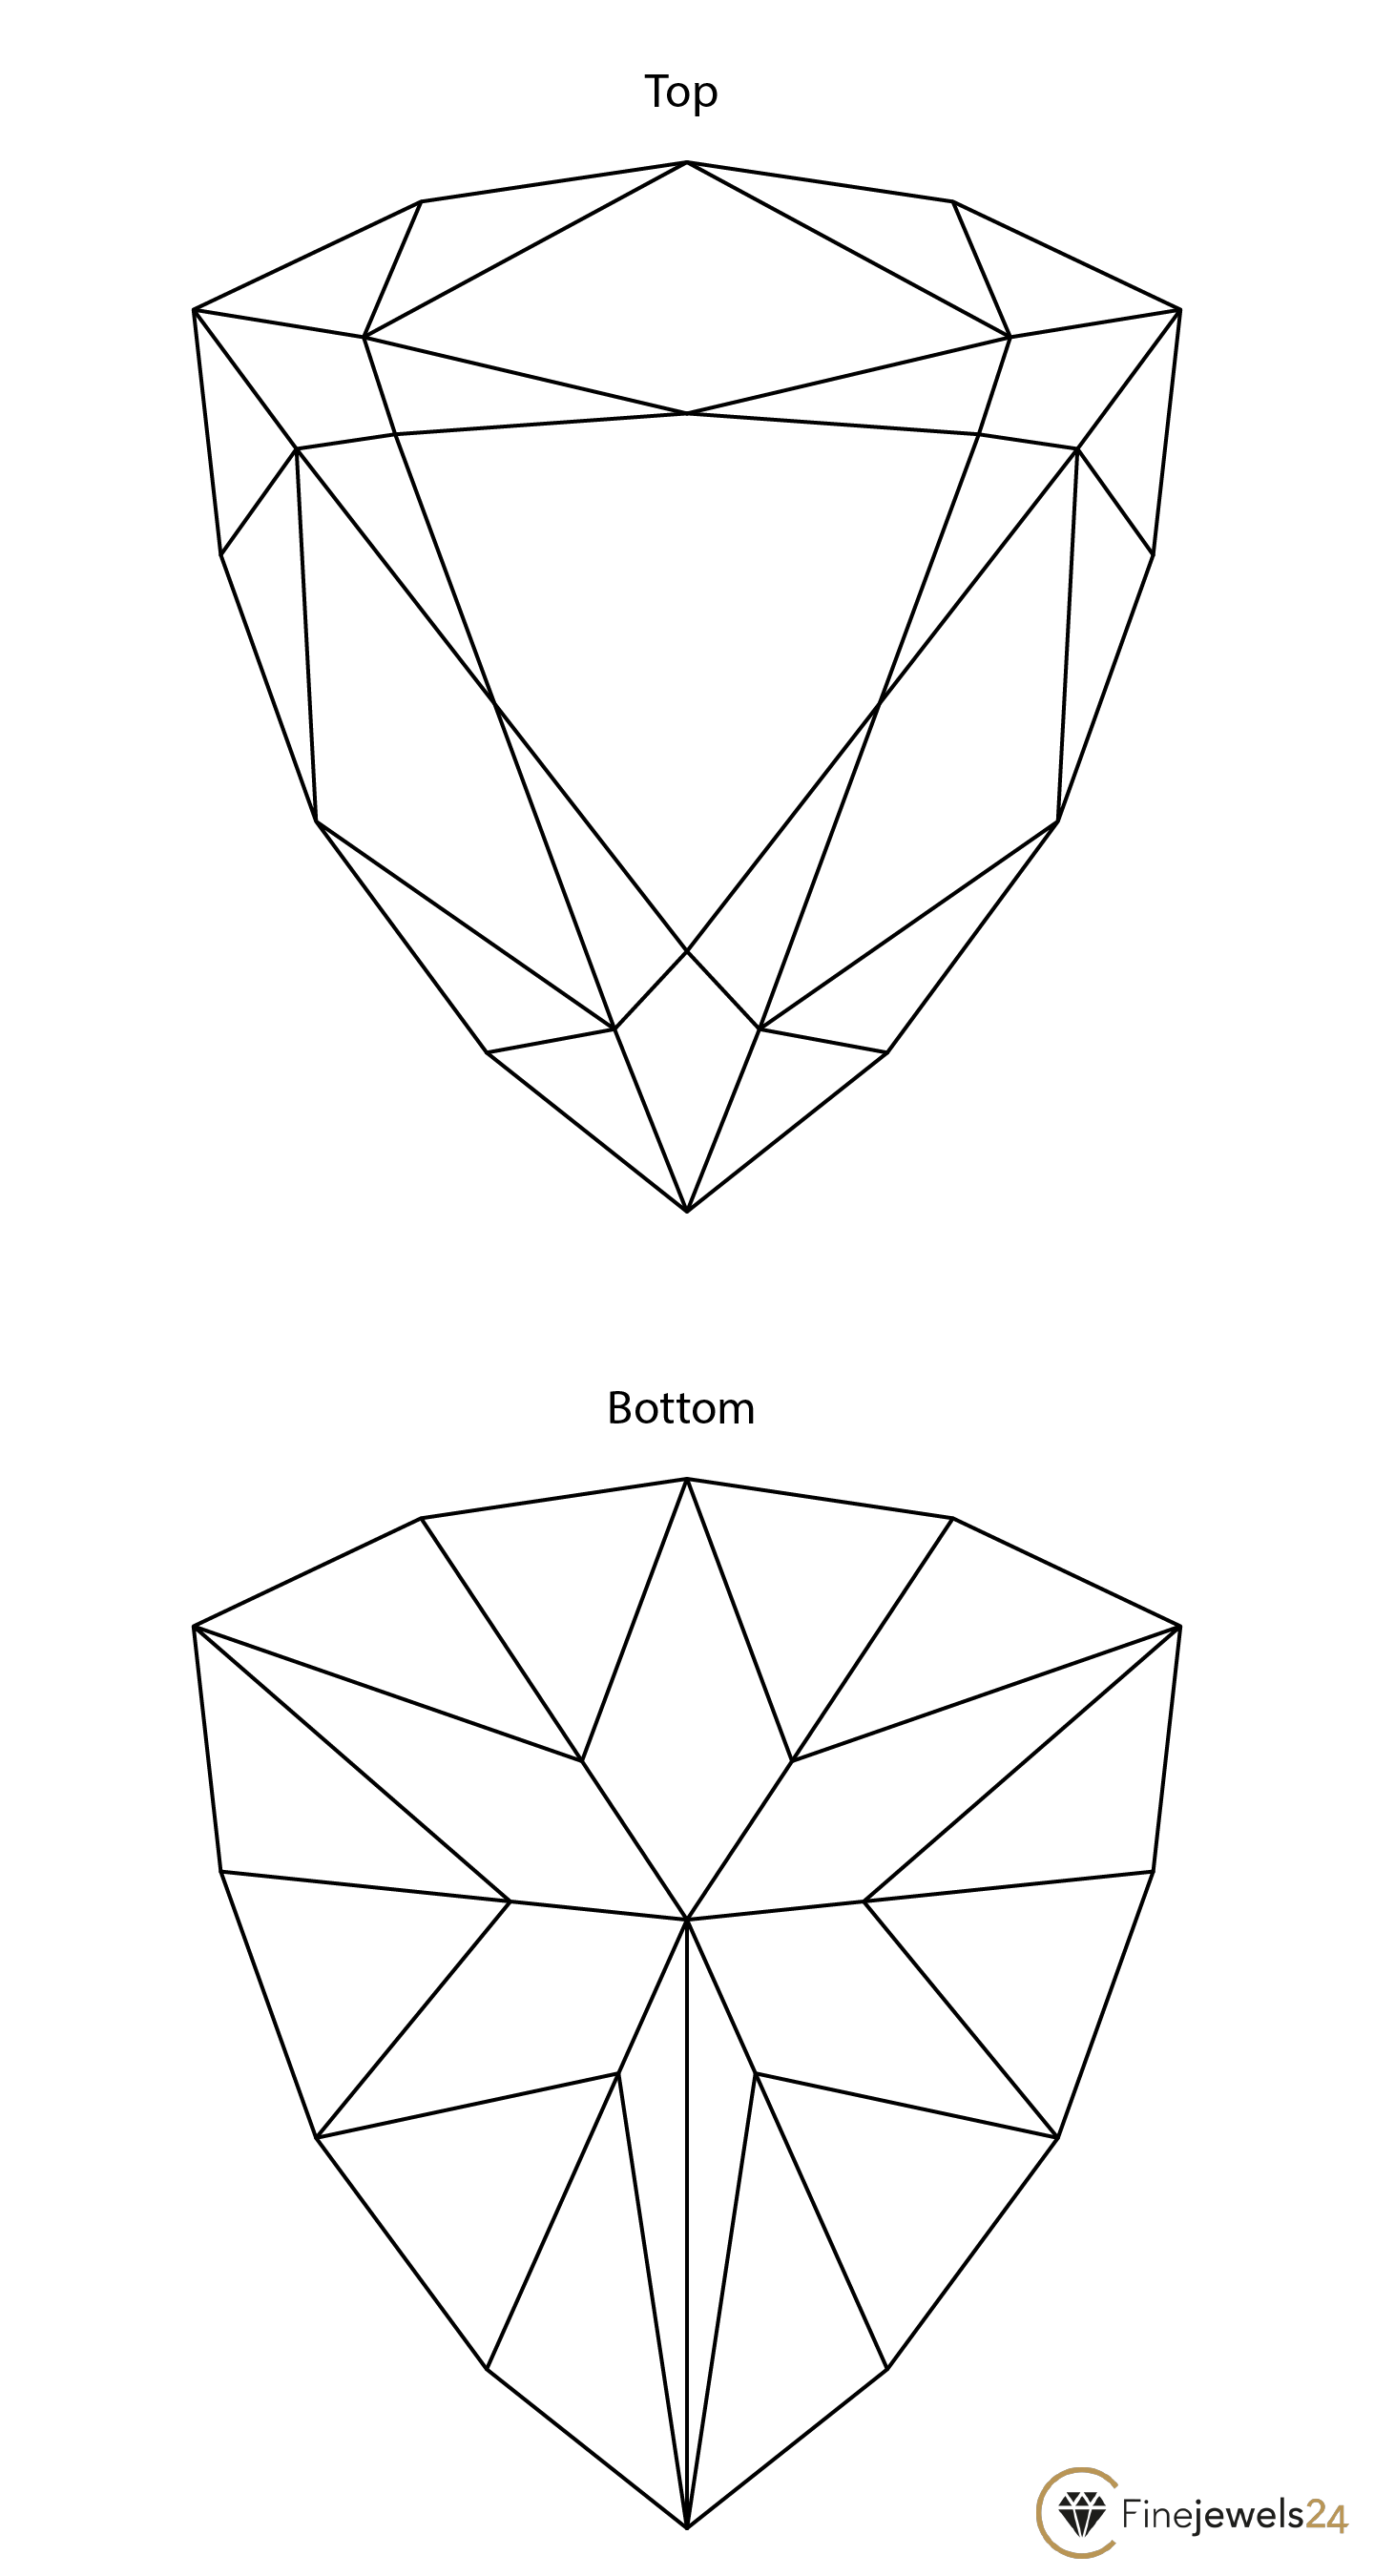 Trilliant cut sketches of top and bottom